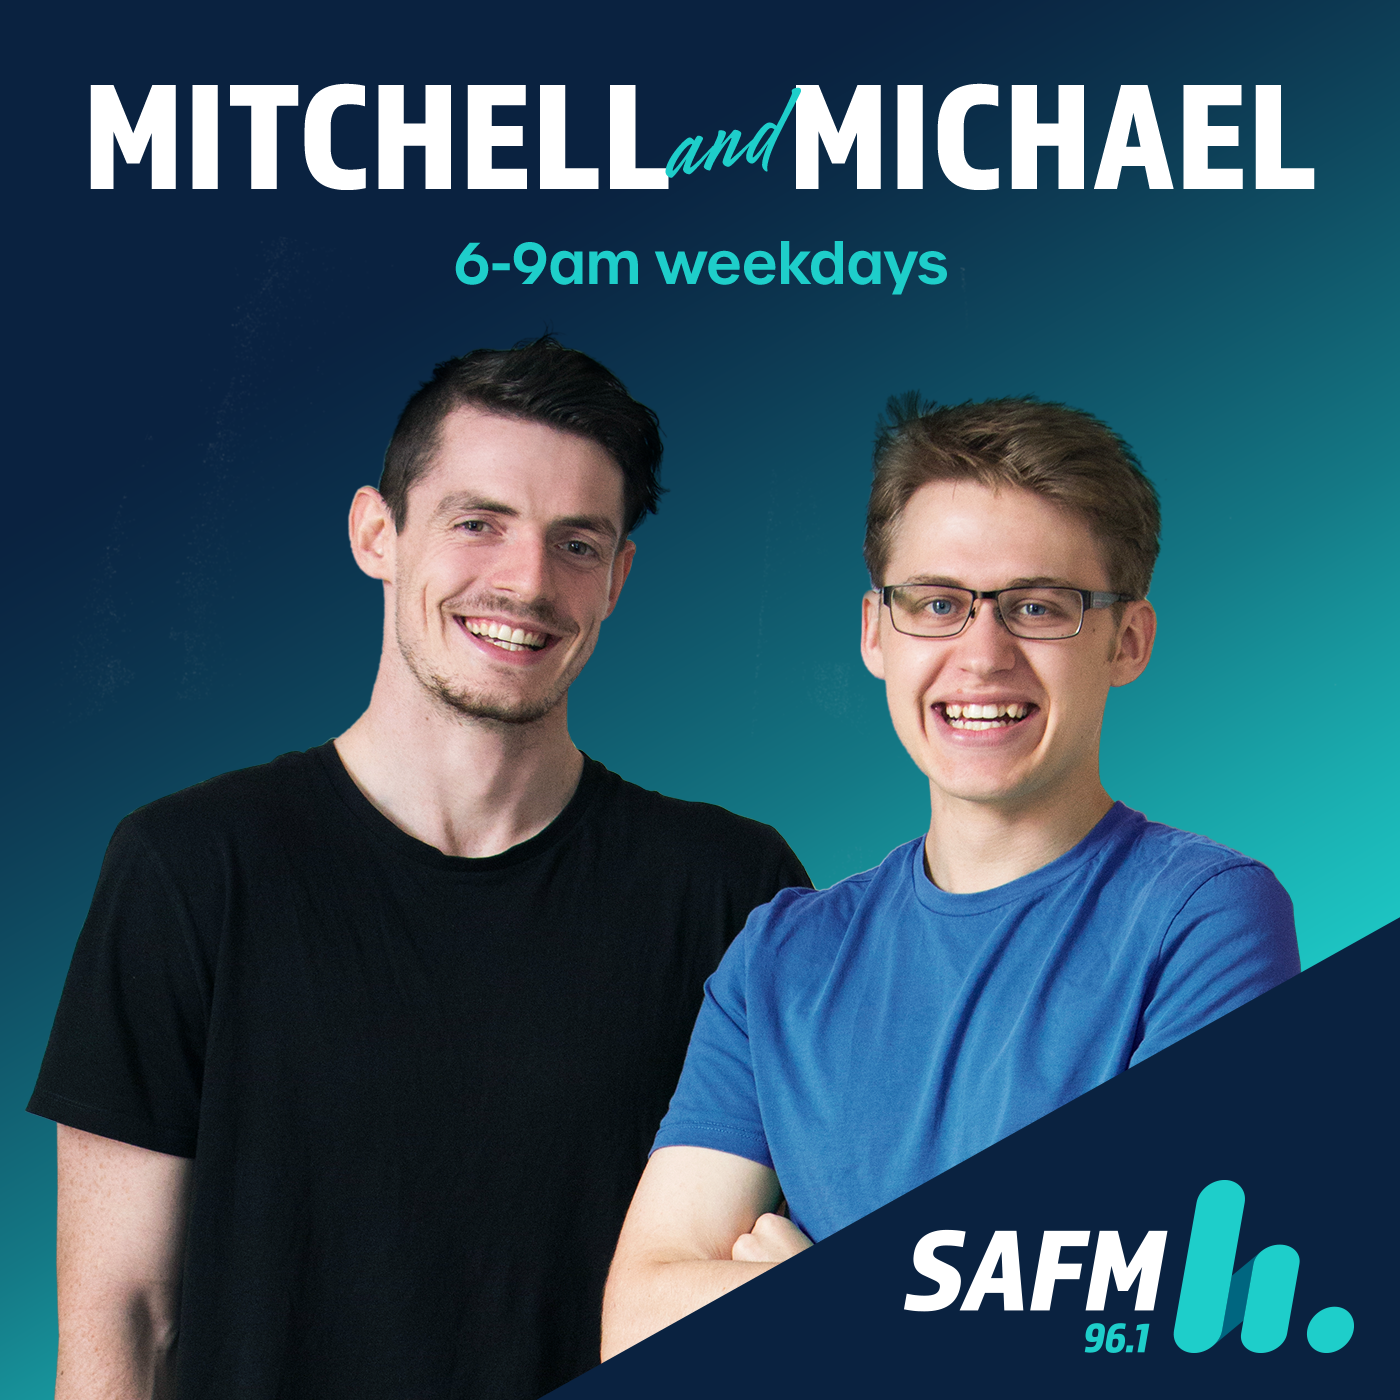 210918 Full Catch Up Show (Friday Funnies, 10 Degrees Of Tinley, Bad Mum Moments)